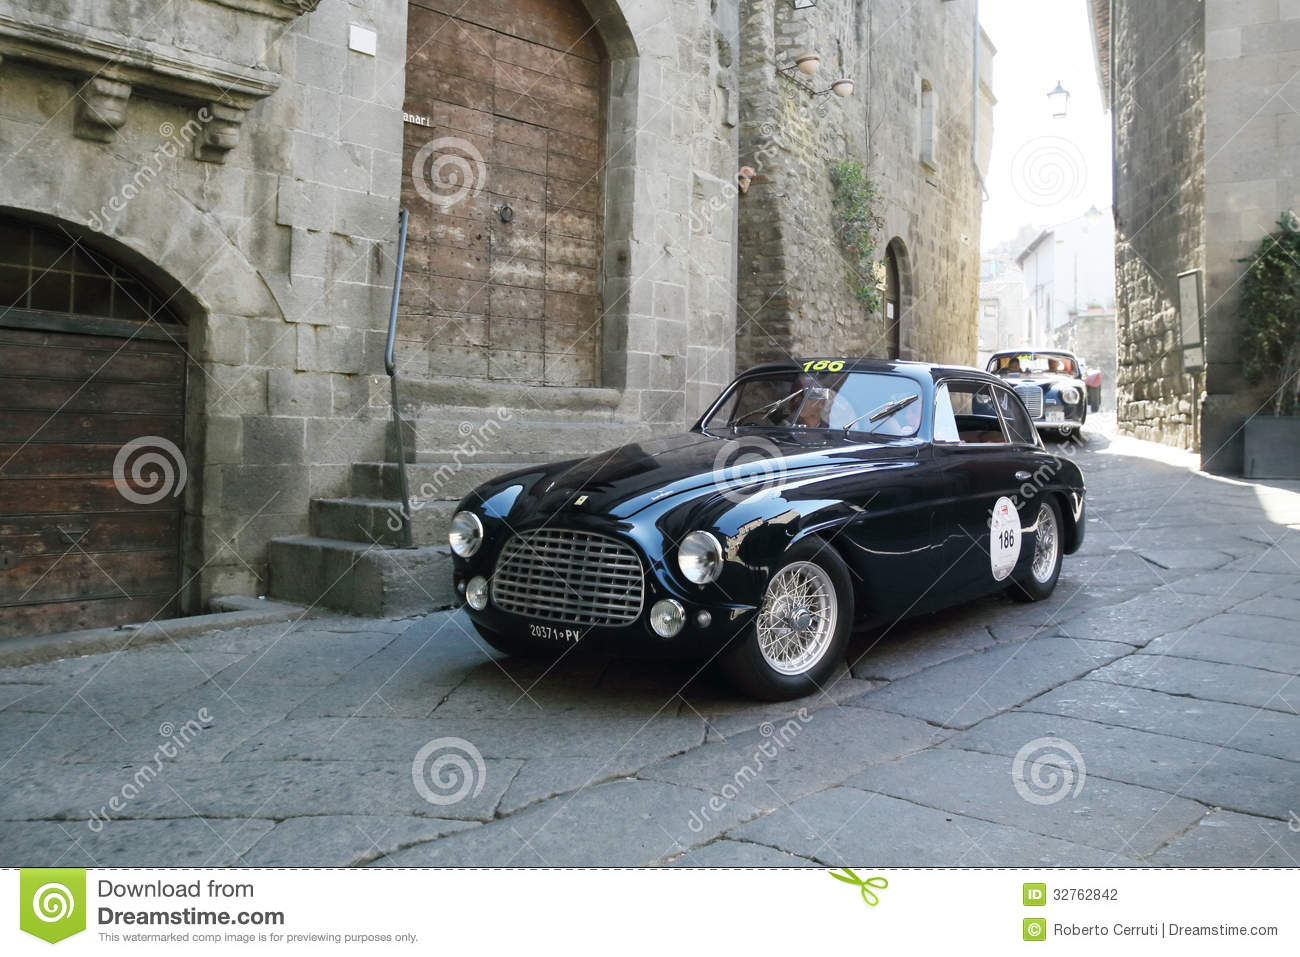 Dark blue Ferrari 166 Touring coupe, 1950, in Viterbo during 1000 Miglia